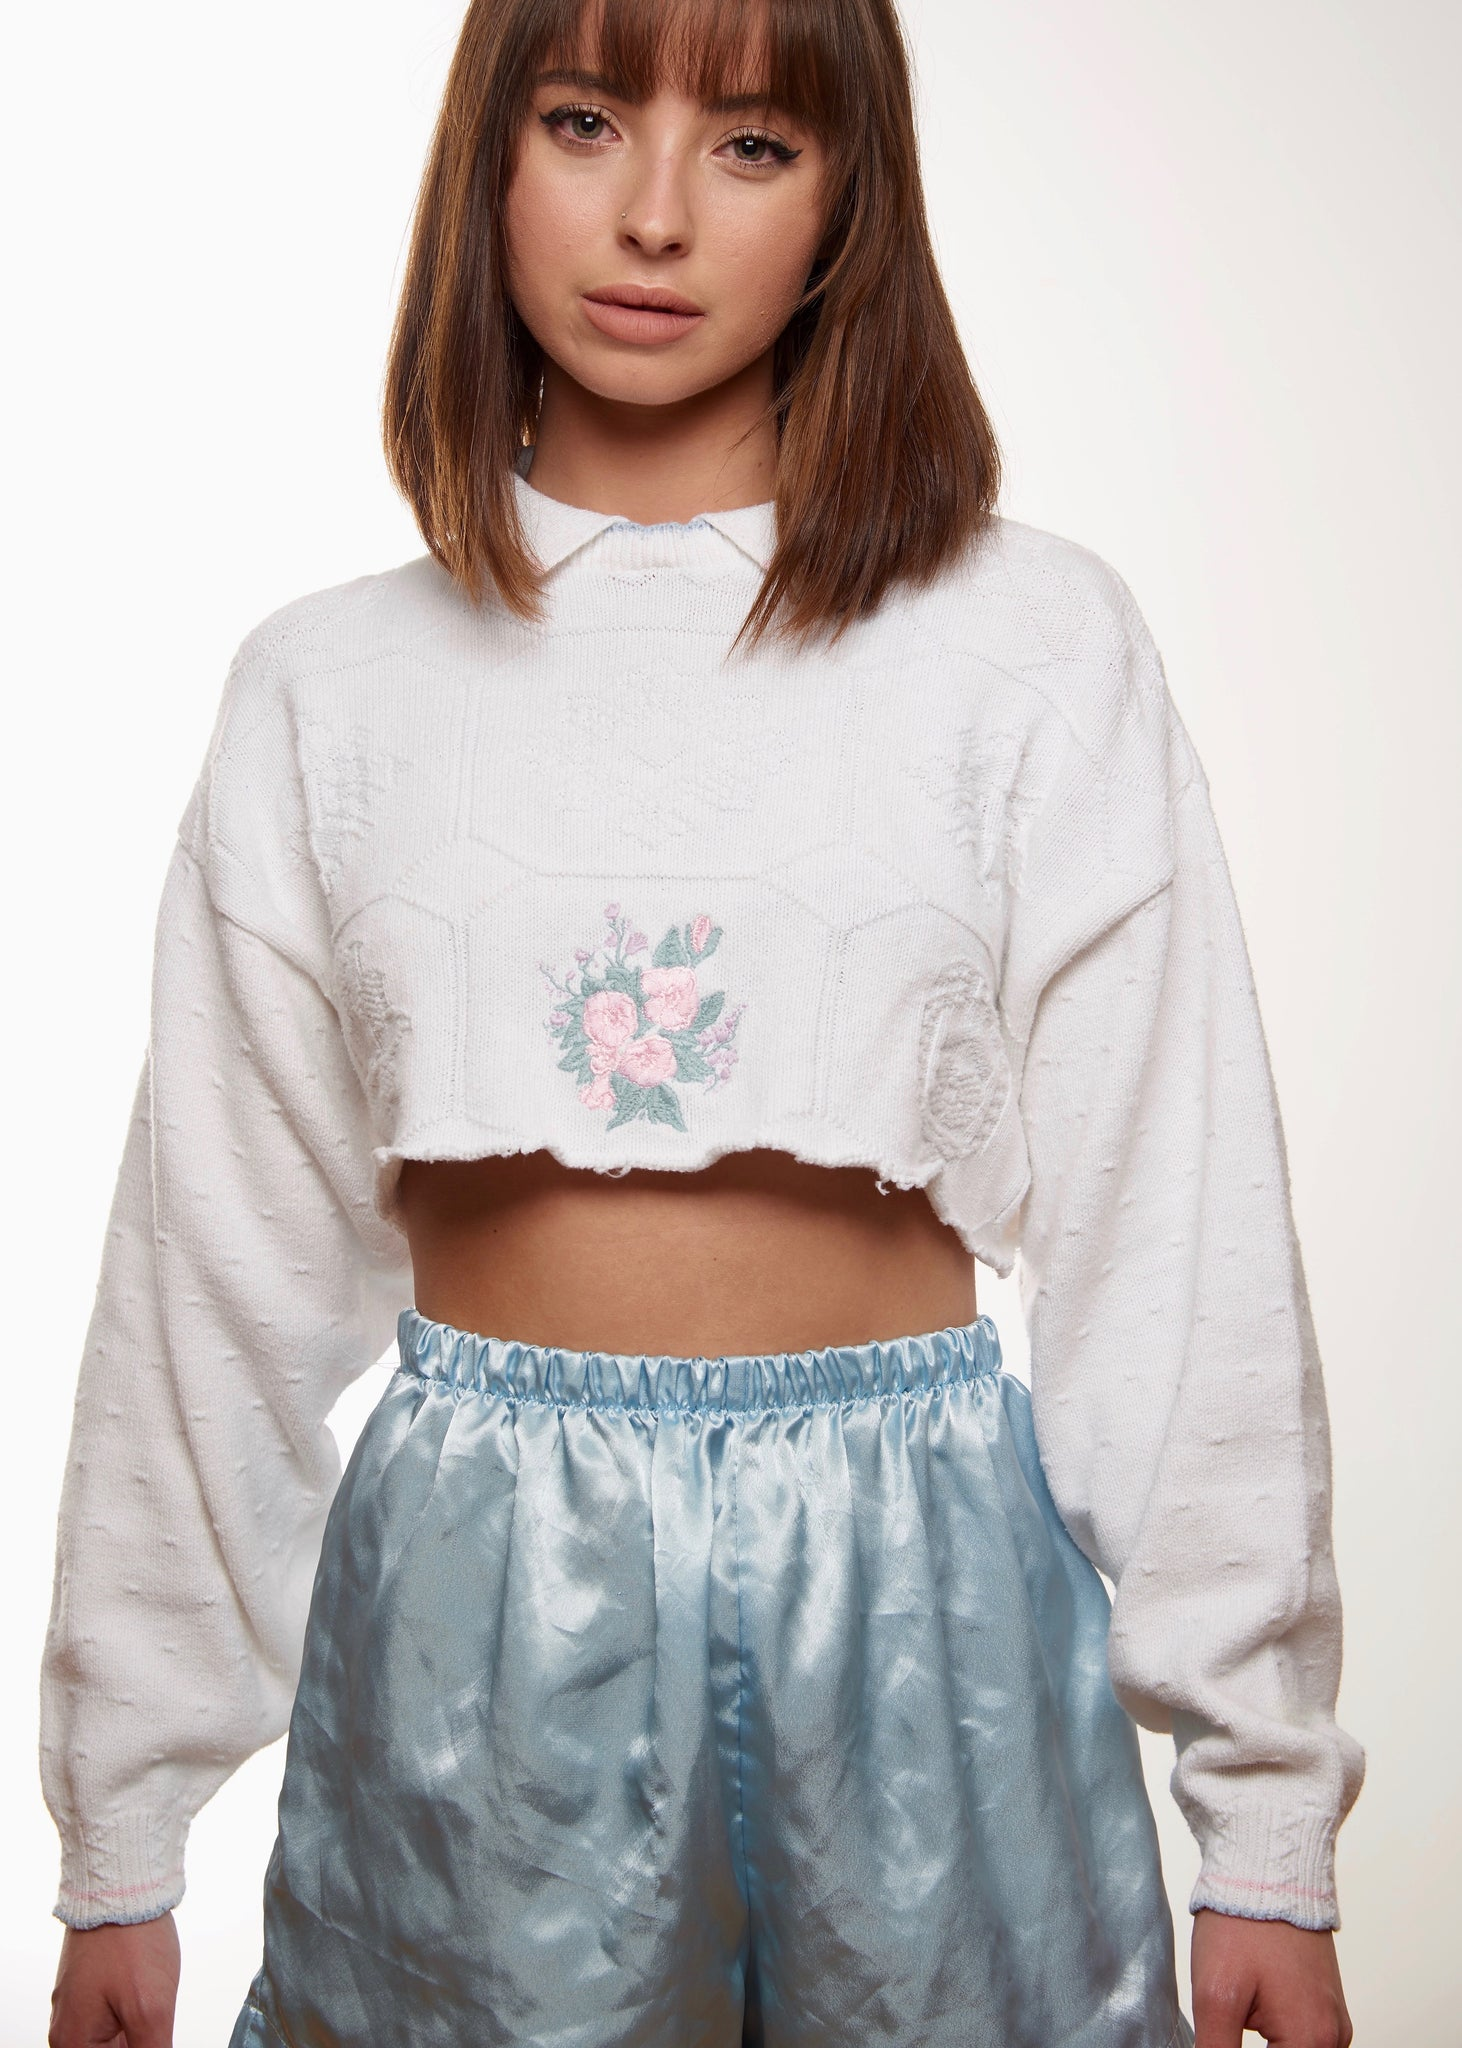 Granny Cropped Sweater